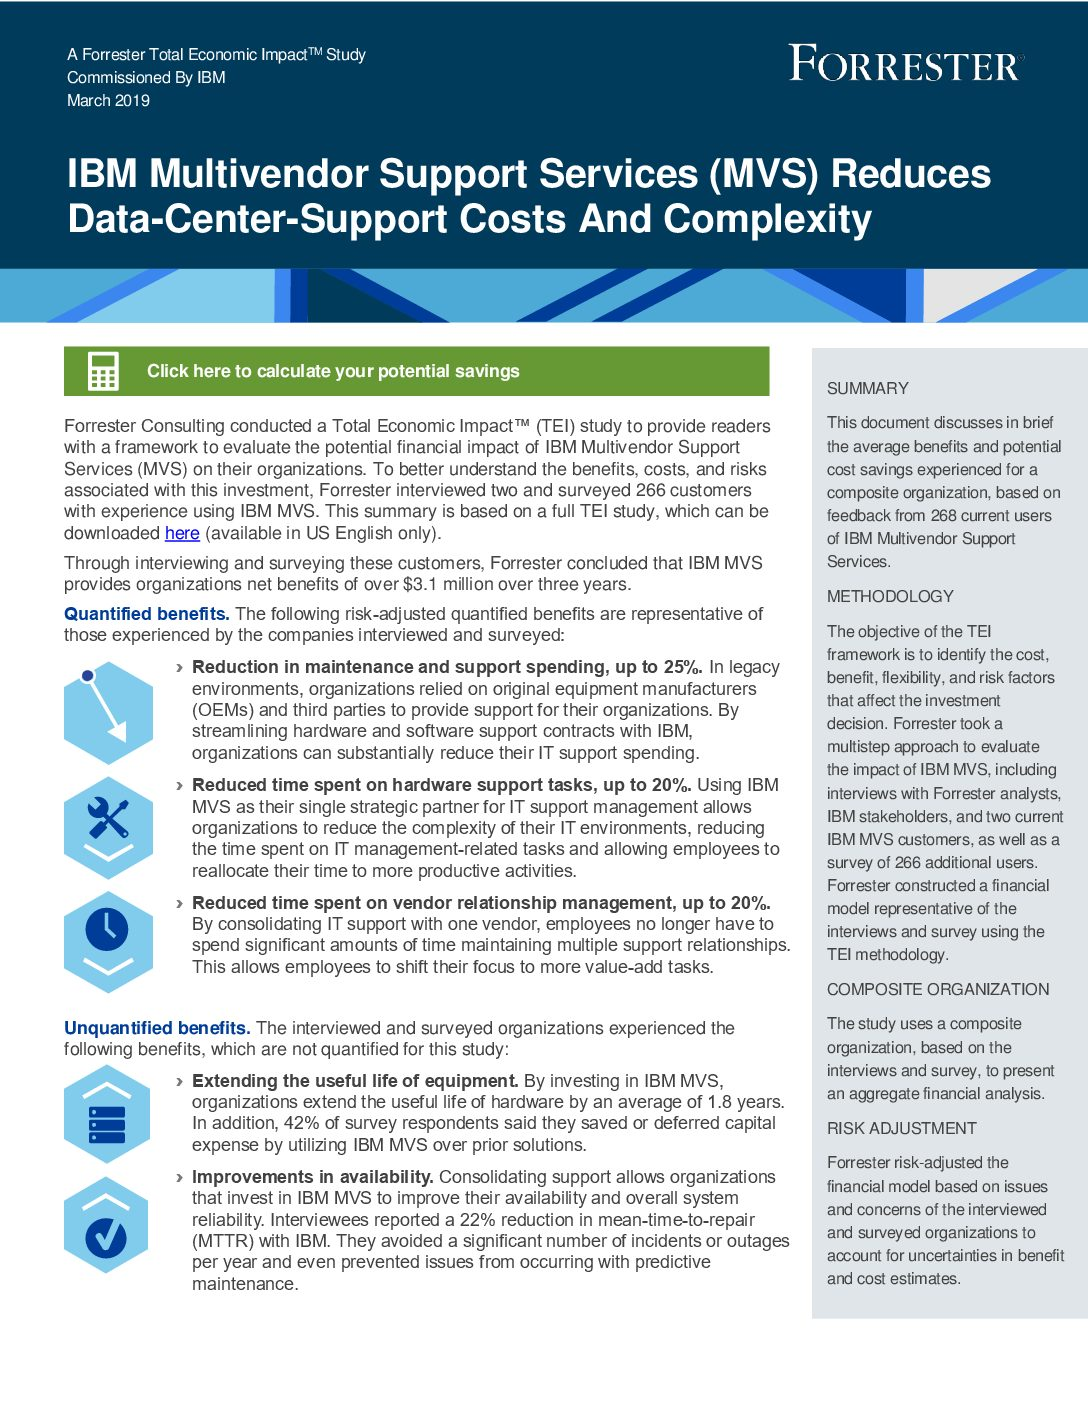 IBM Multivendor Support Services Reduces Data-Center-Support Costs And Complexity